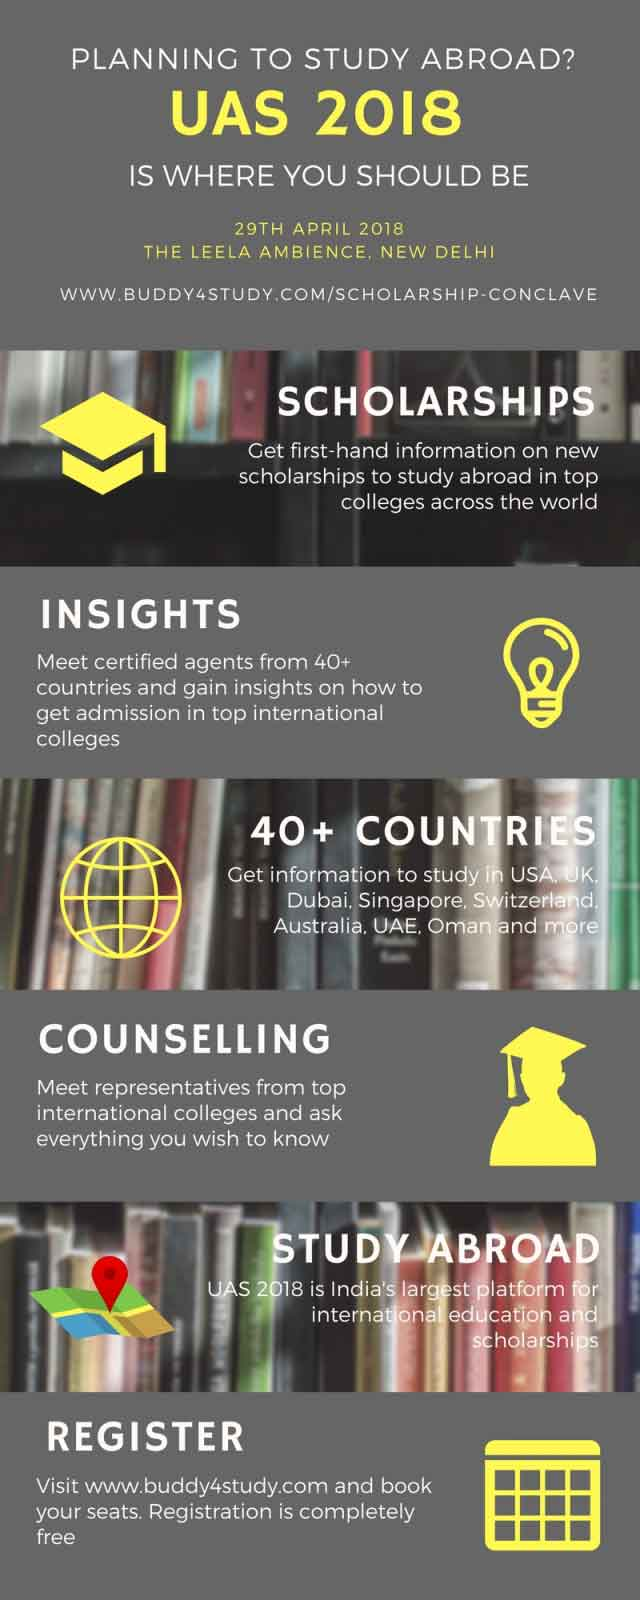 Study Abroad Scholarship assistance at Buddy4Study